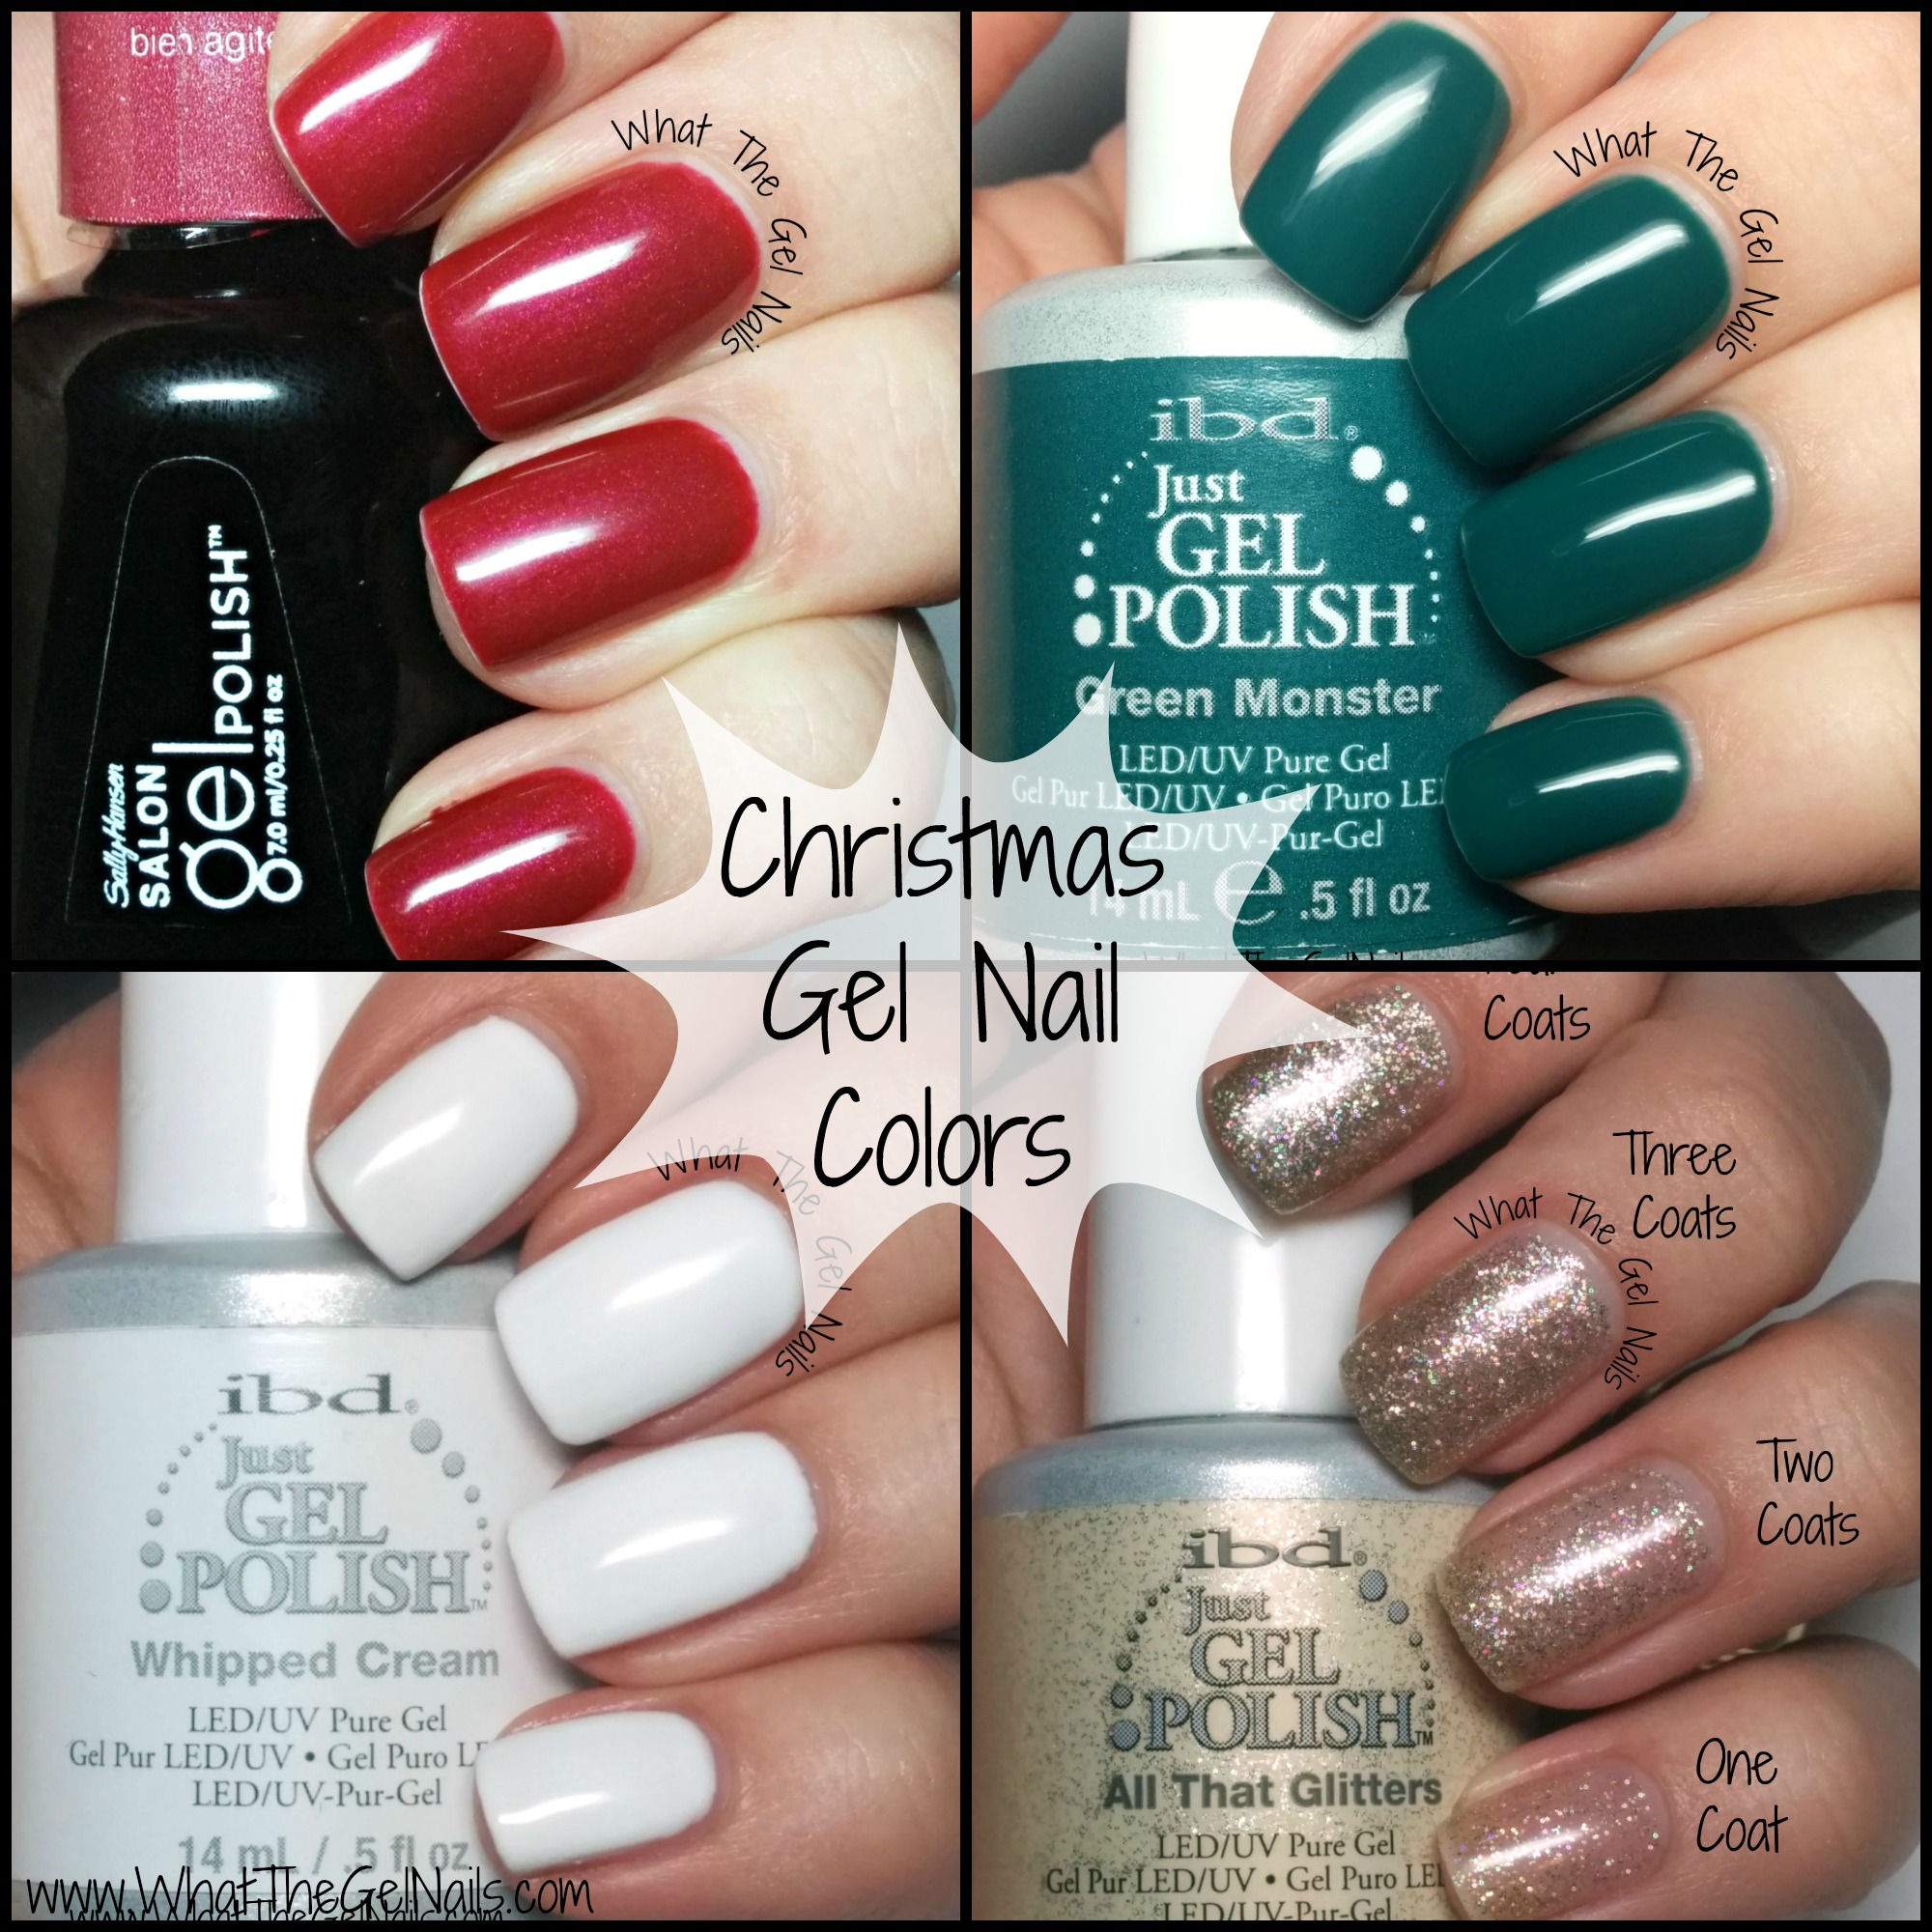 Gel colors for nails - Expression Nails